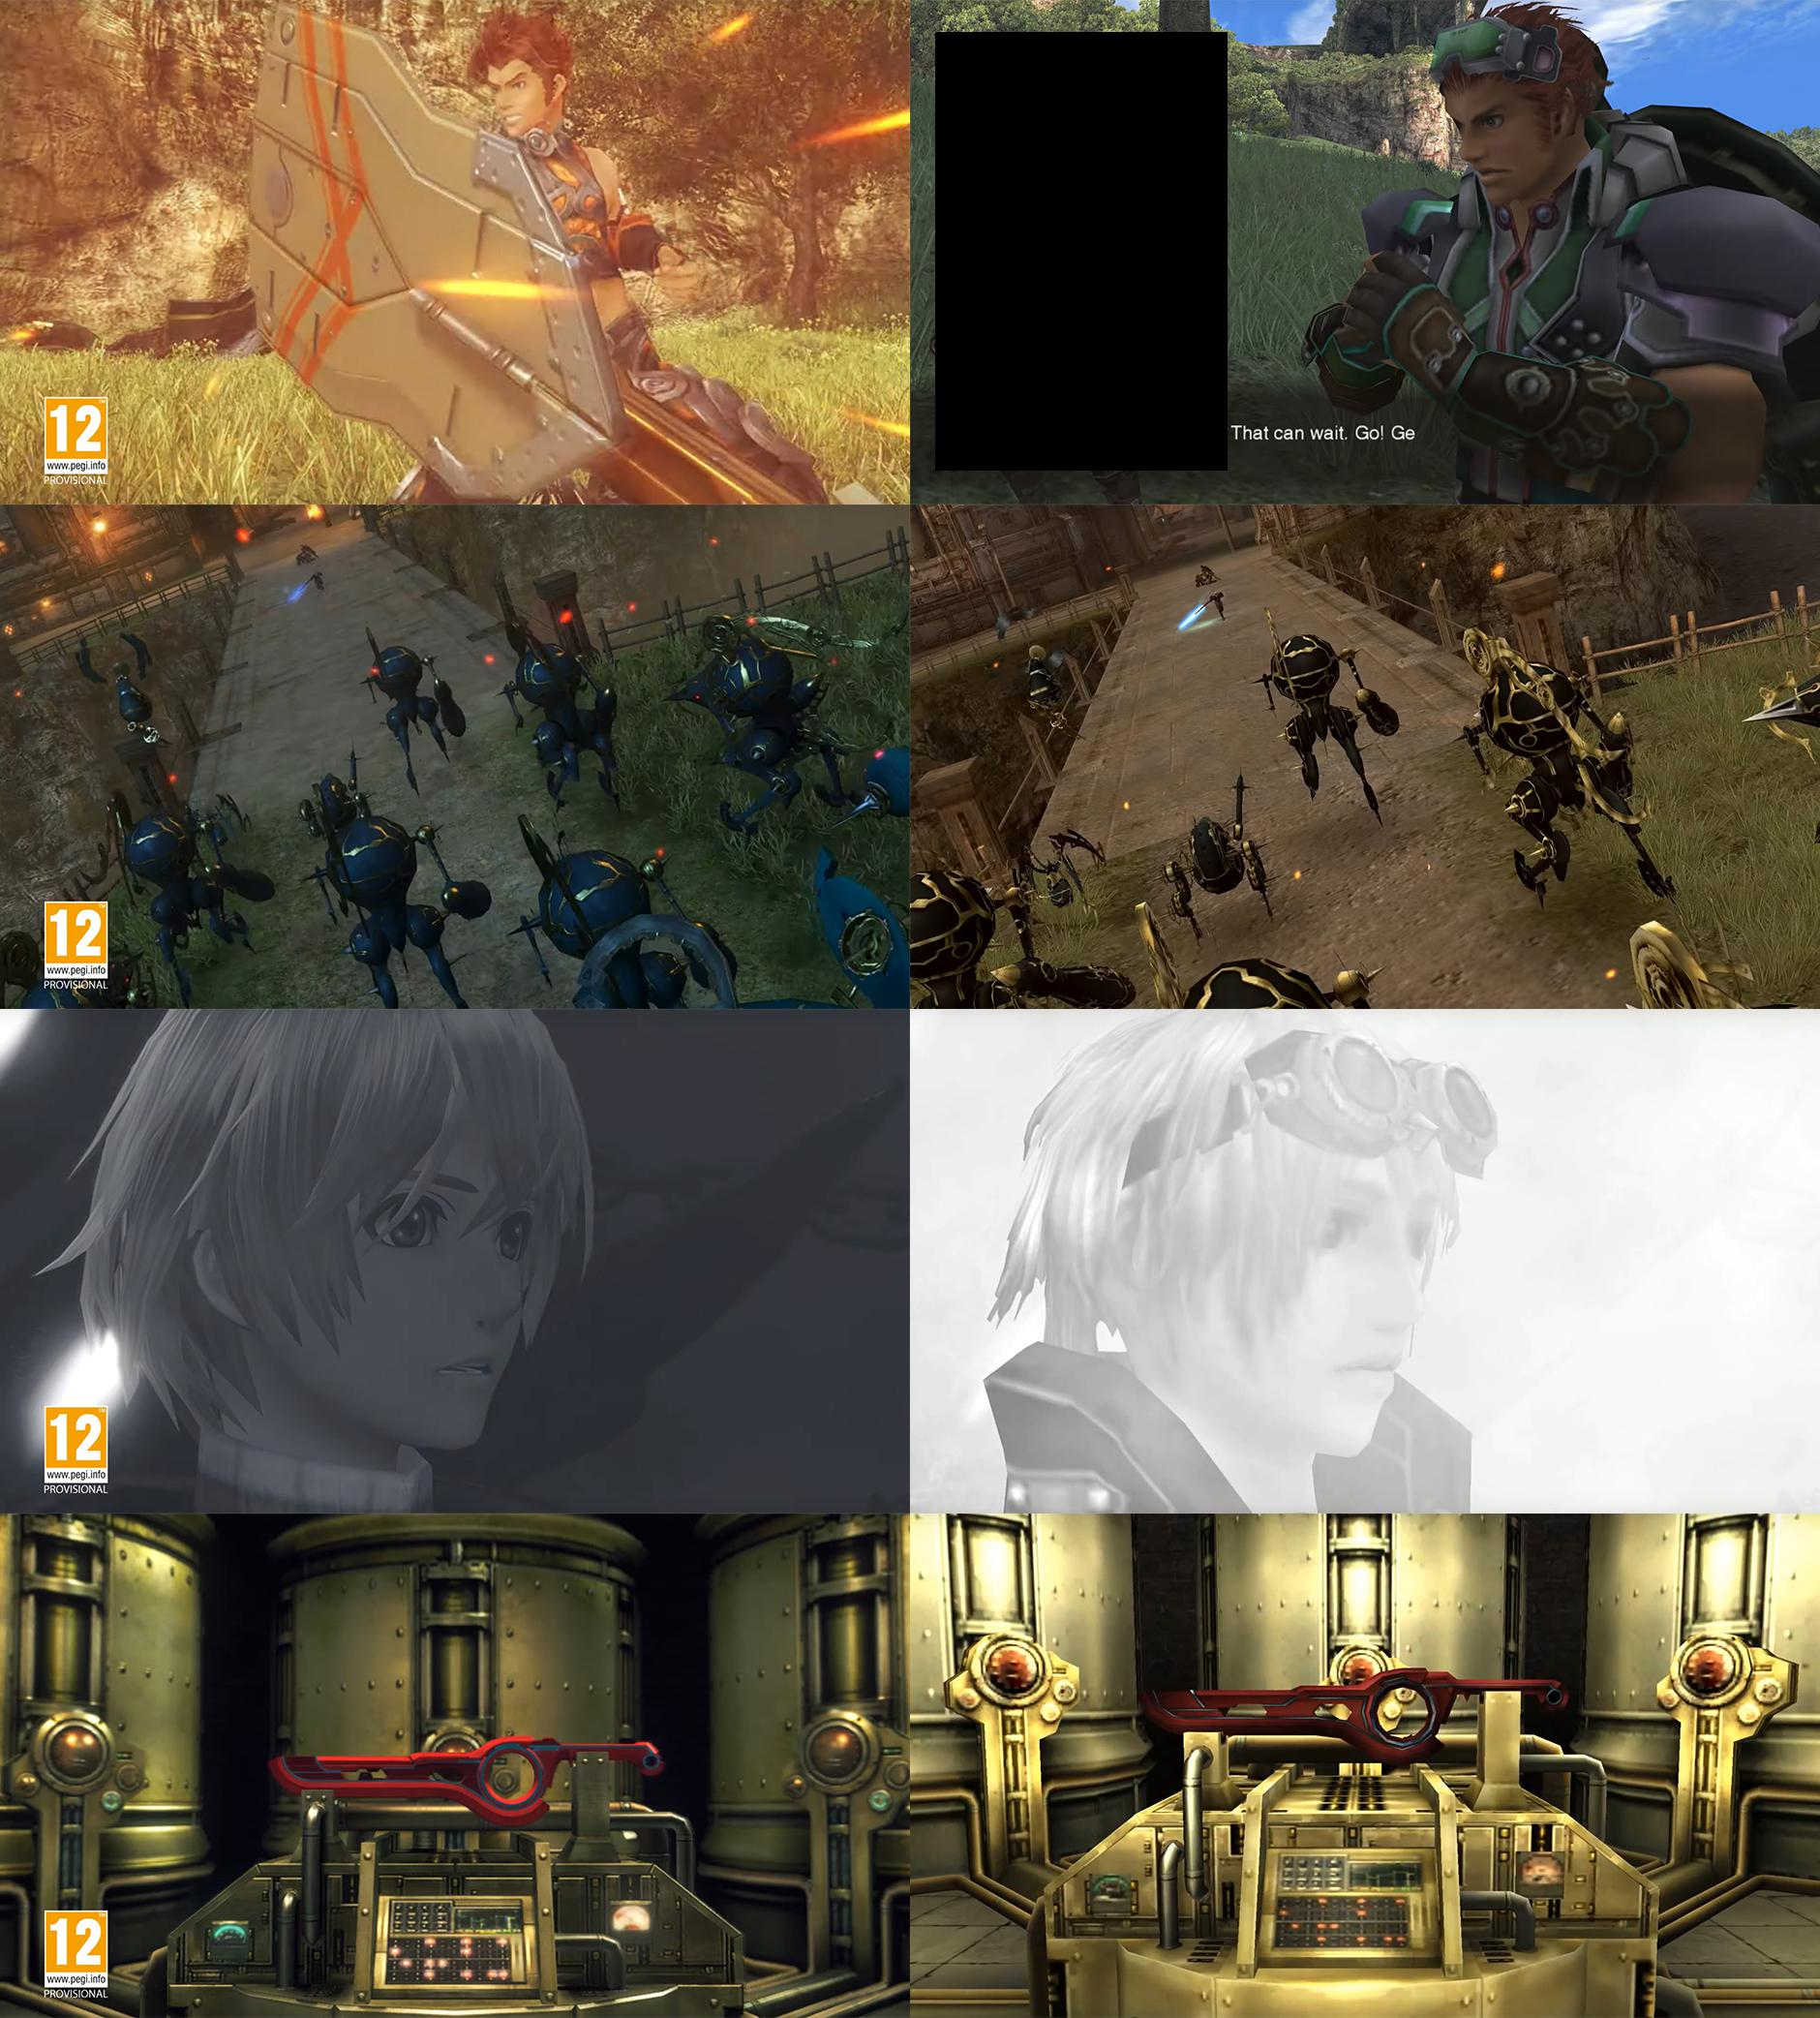 xenoblade chronicles comparison